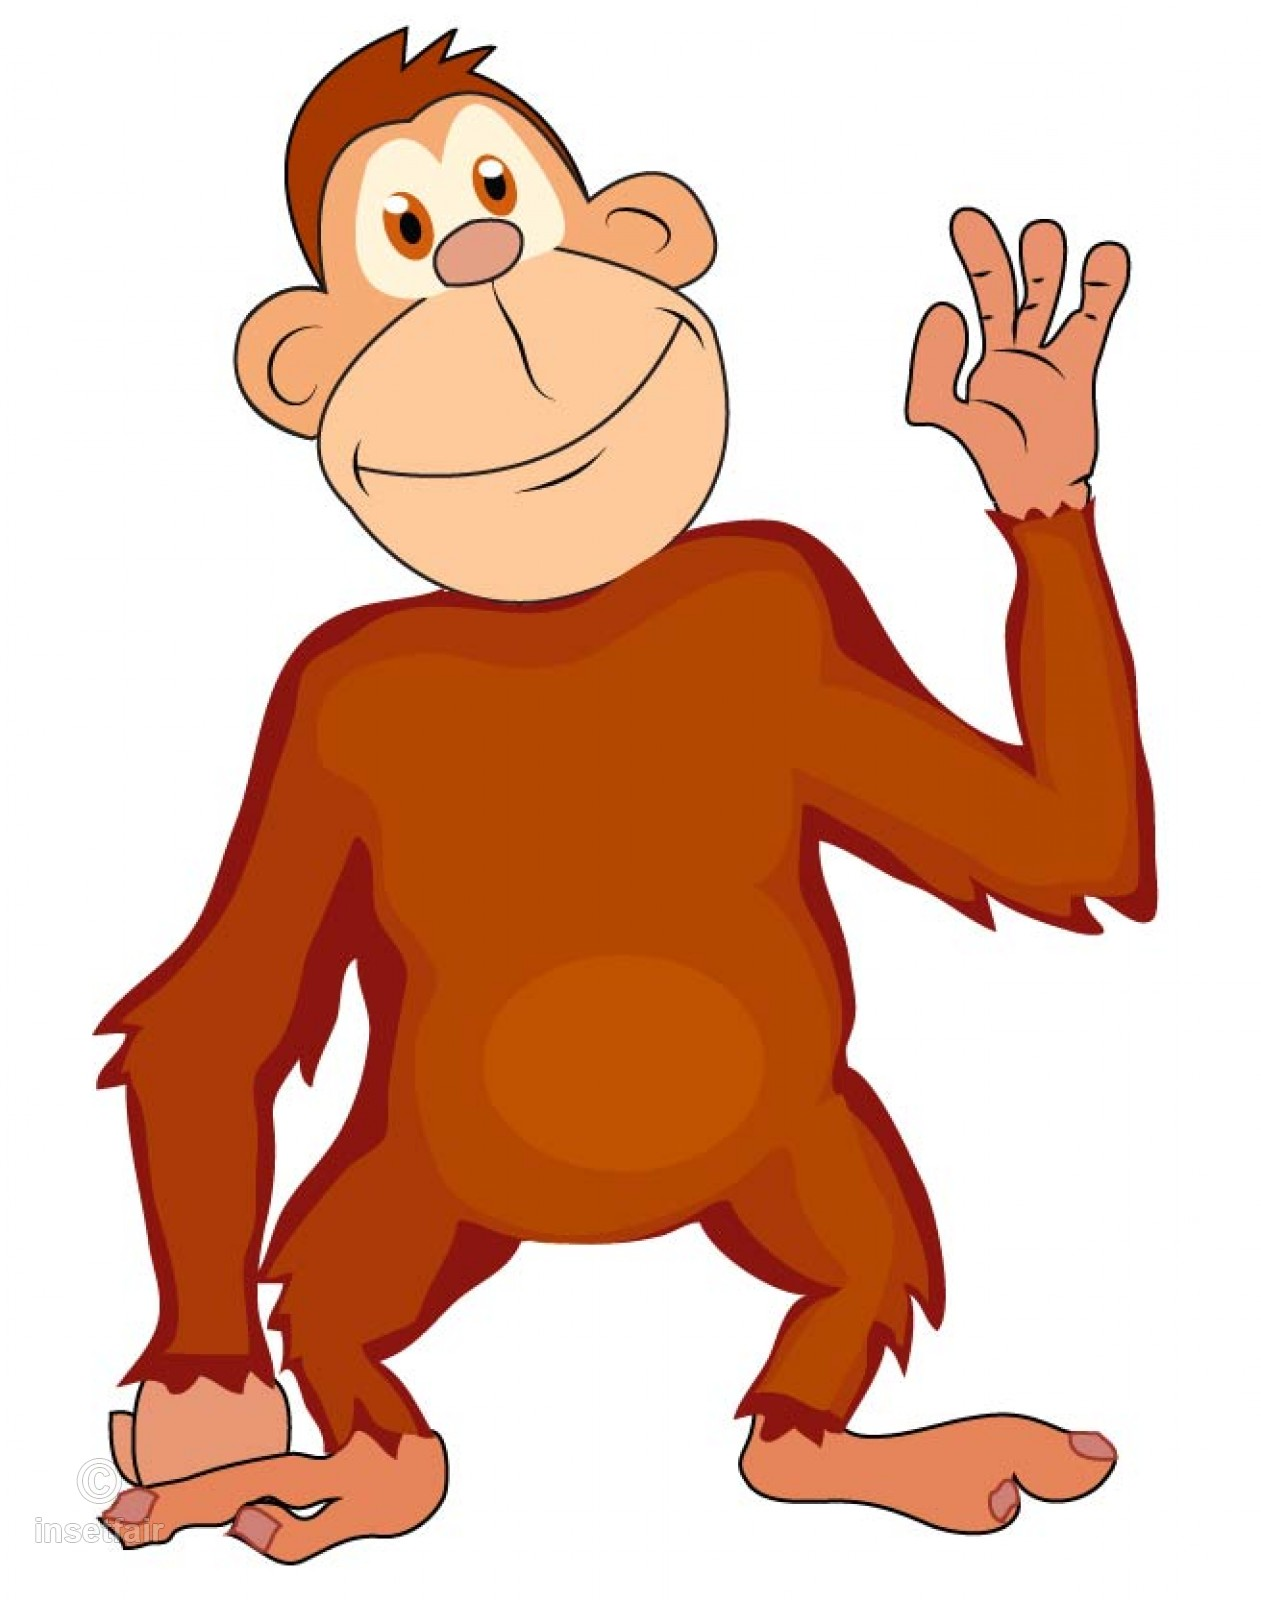 1261x1600 Cartoon Monkey Vector Image For Free